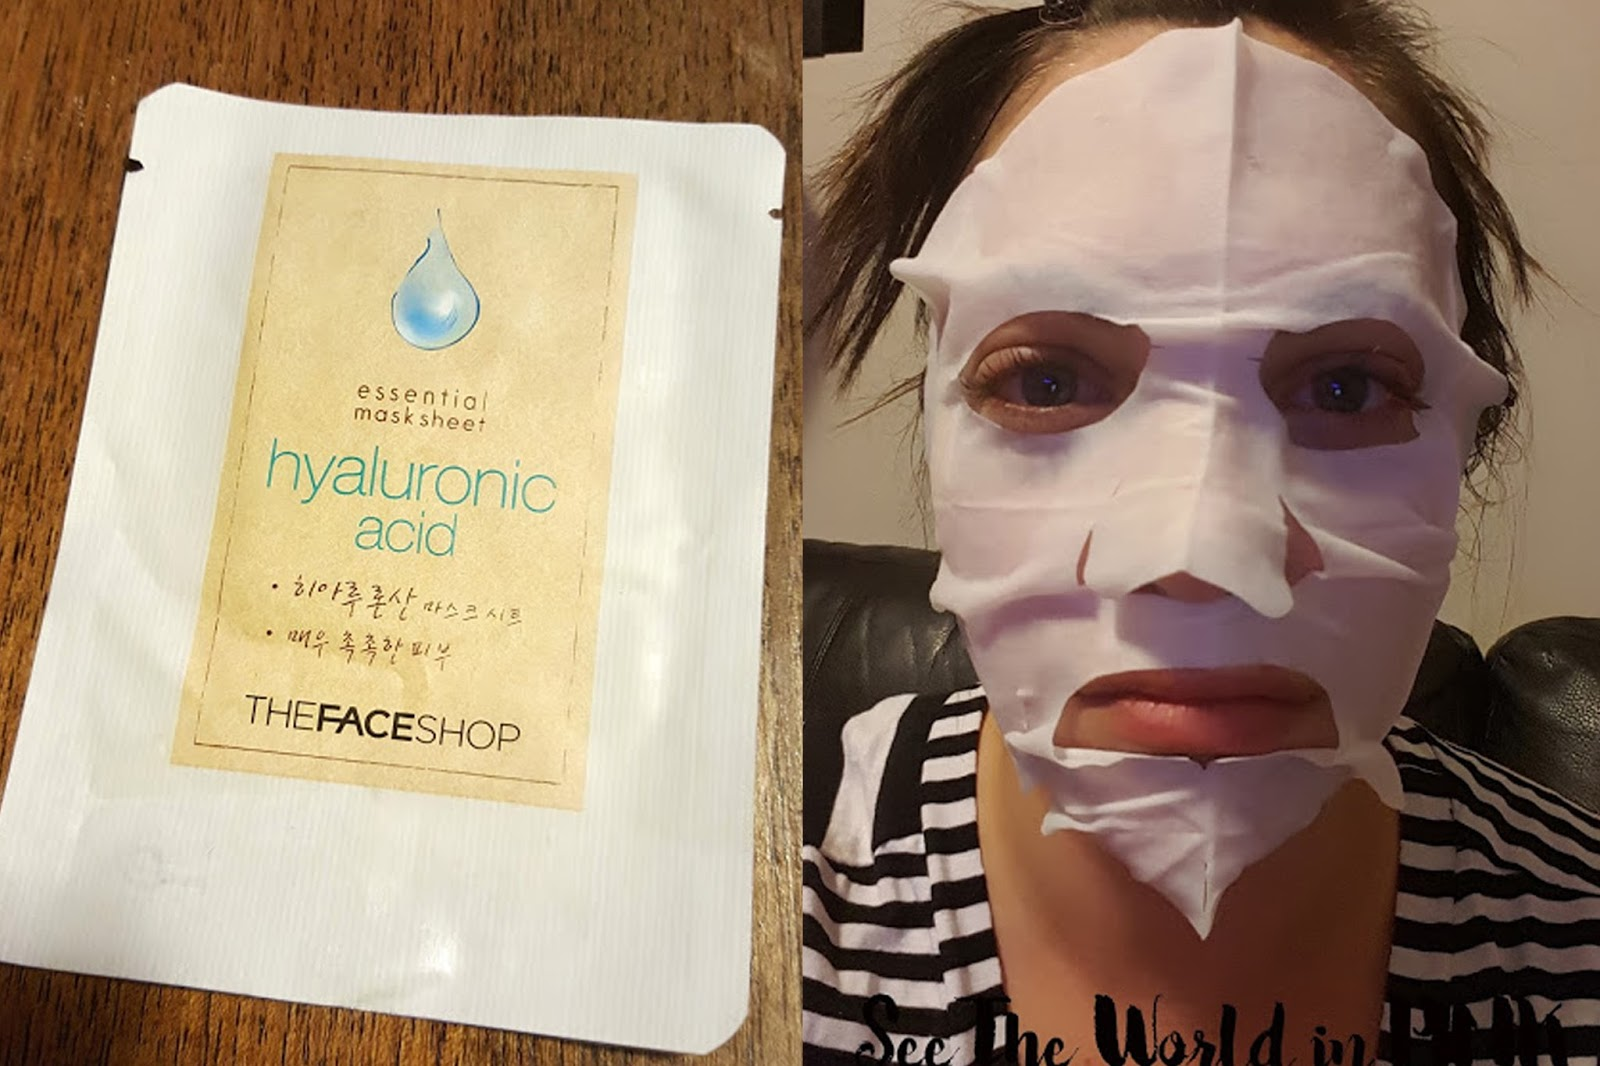 The Face Shop Essential Mask Sheet - Hyaluronic Acid